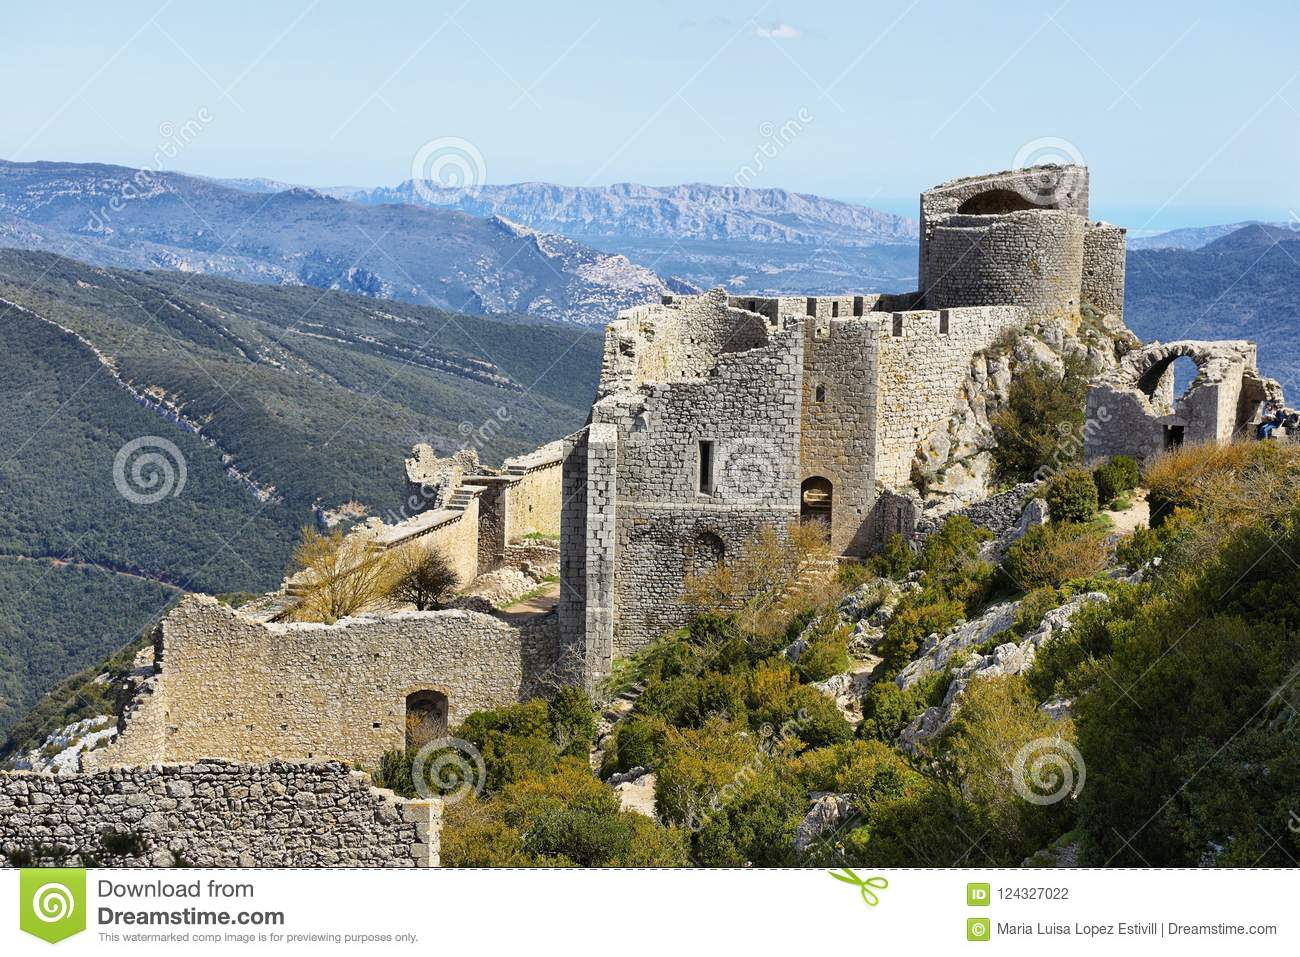 20 Cathar Castle Photos   Free & Royalty Free Stock Photos from ...